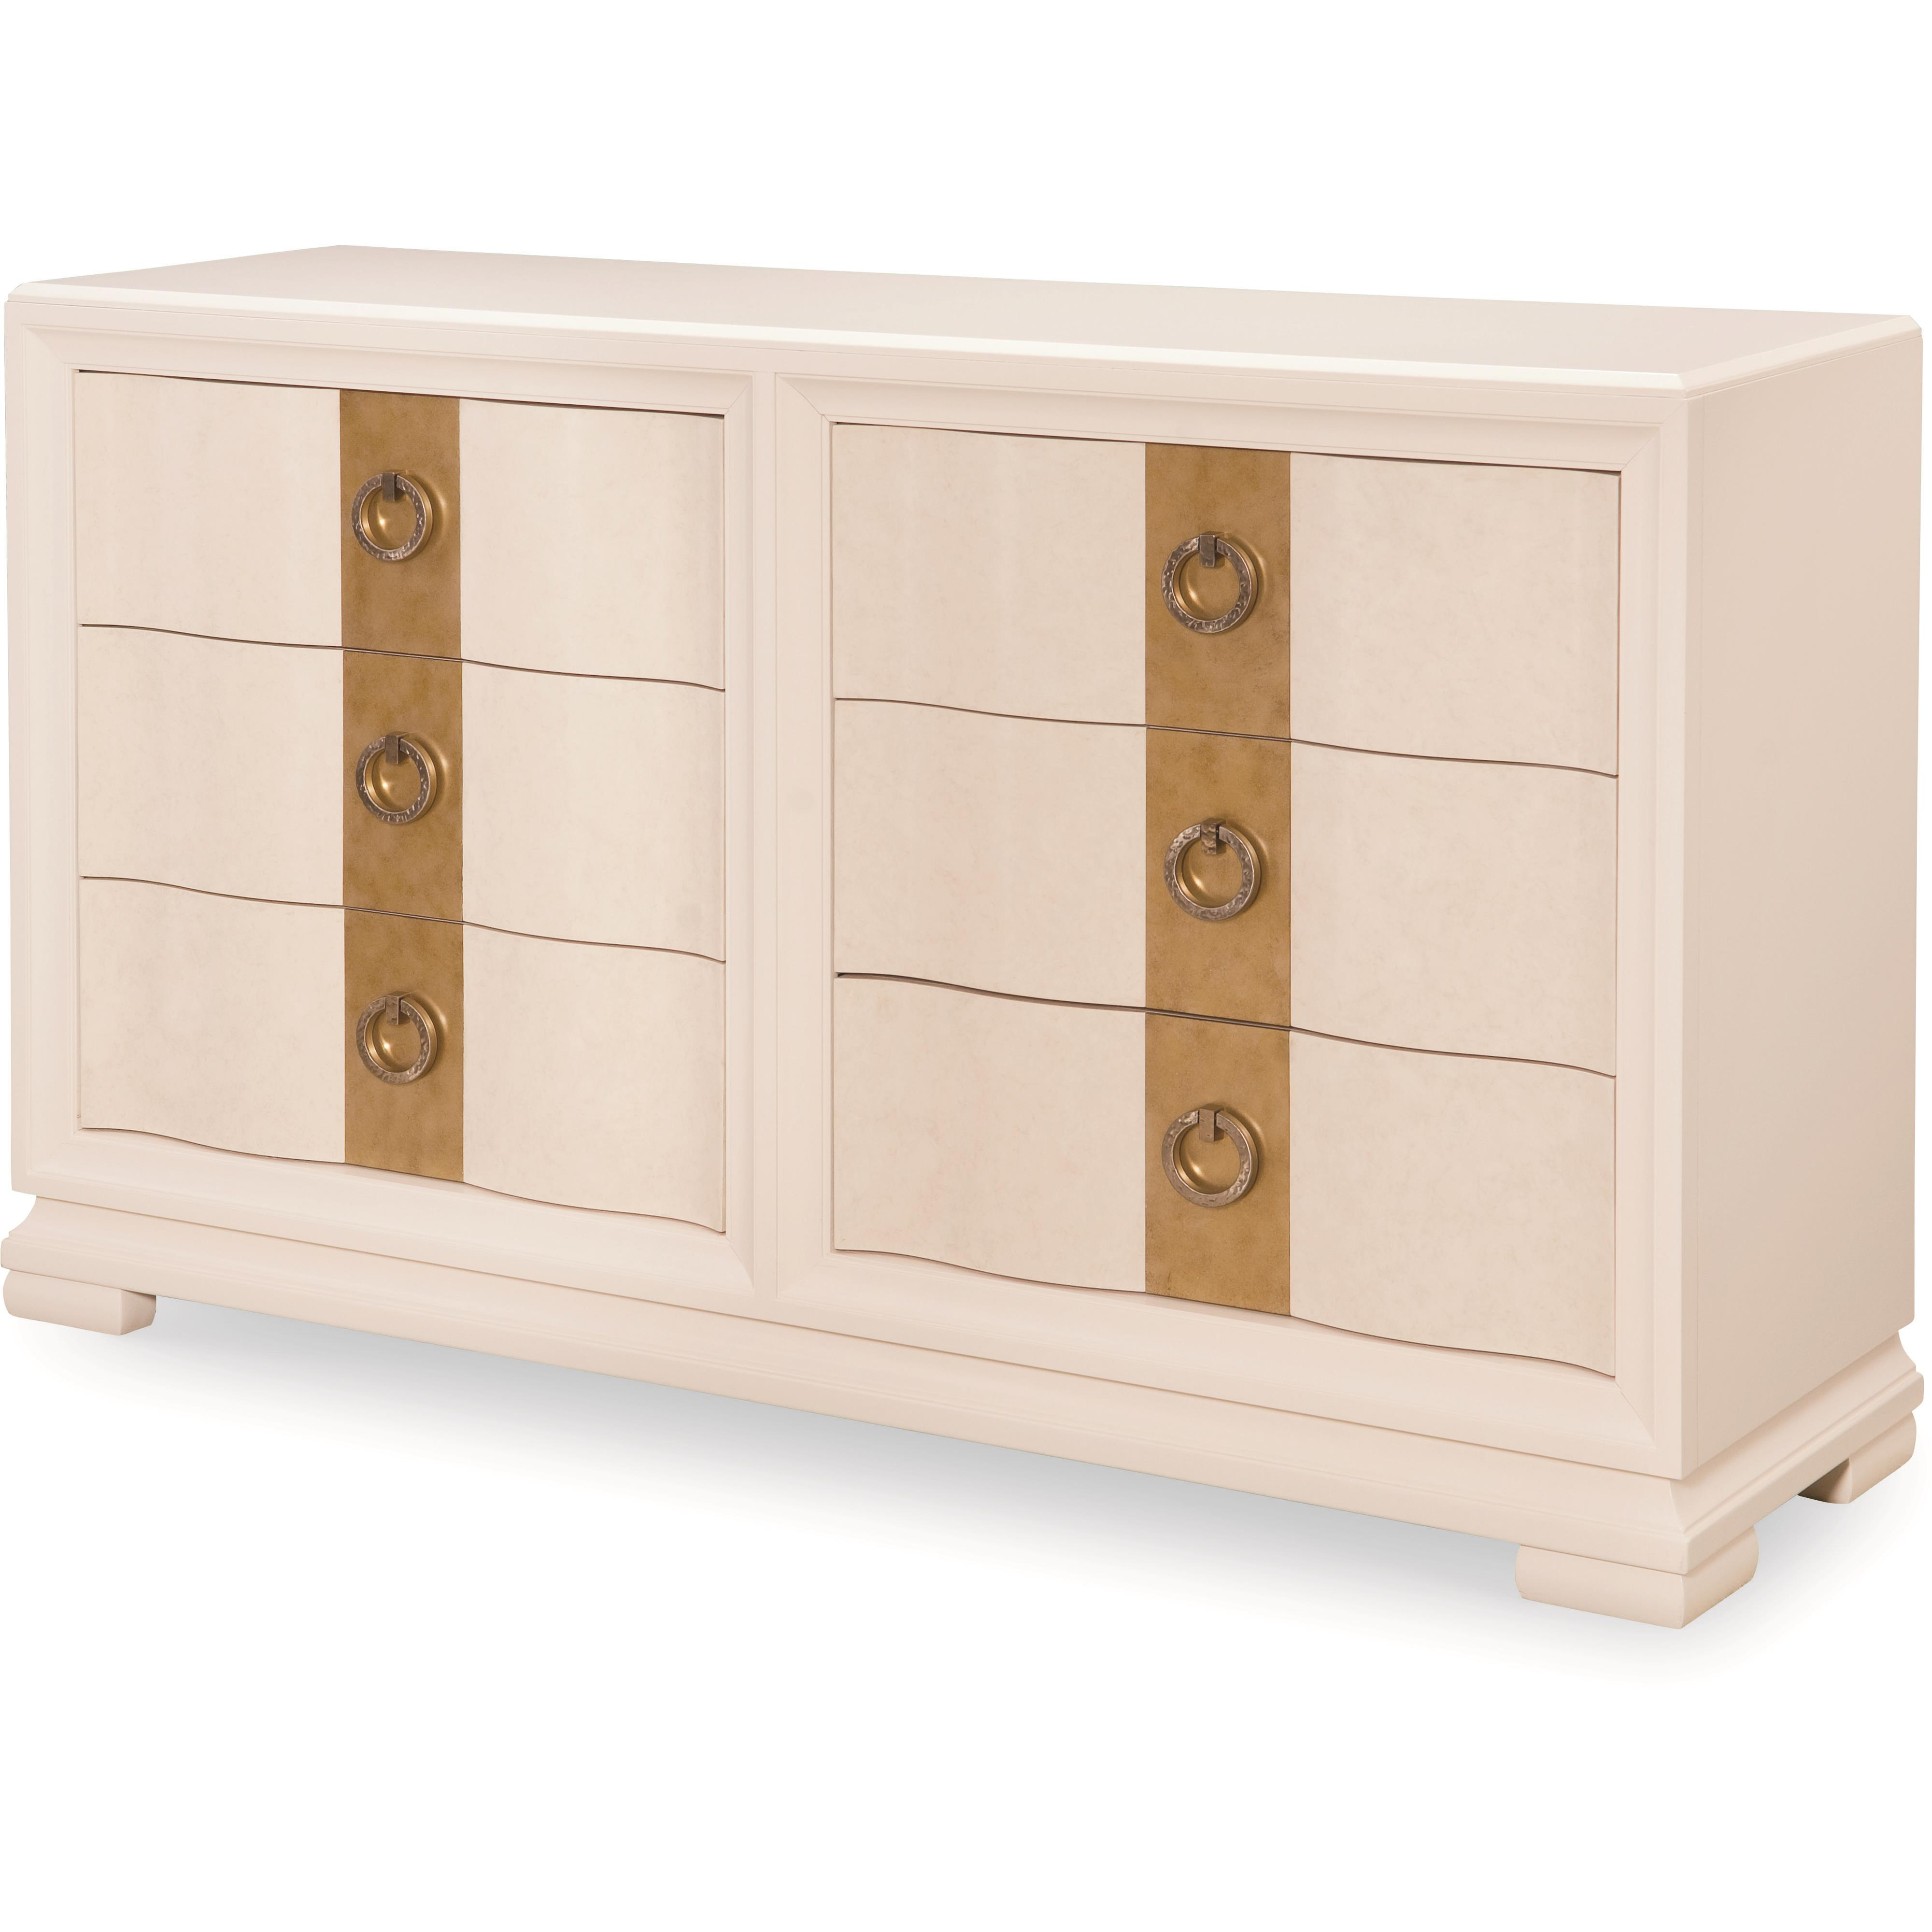 Legacy Classic Tower Suite Dresser  - Item Number: 5010-1200